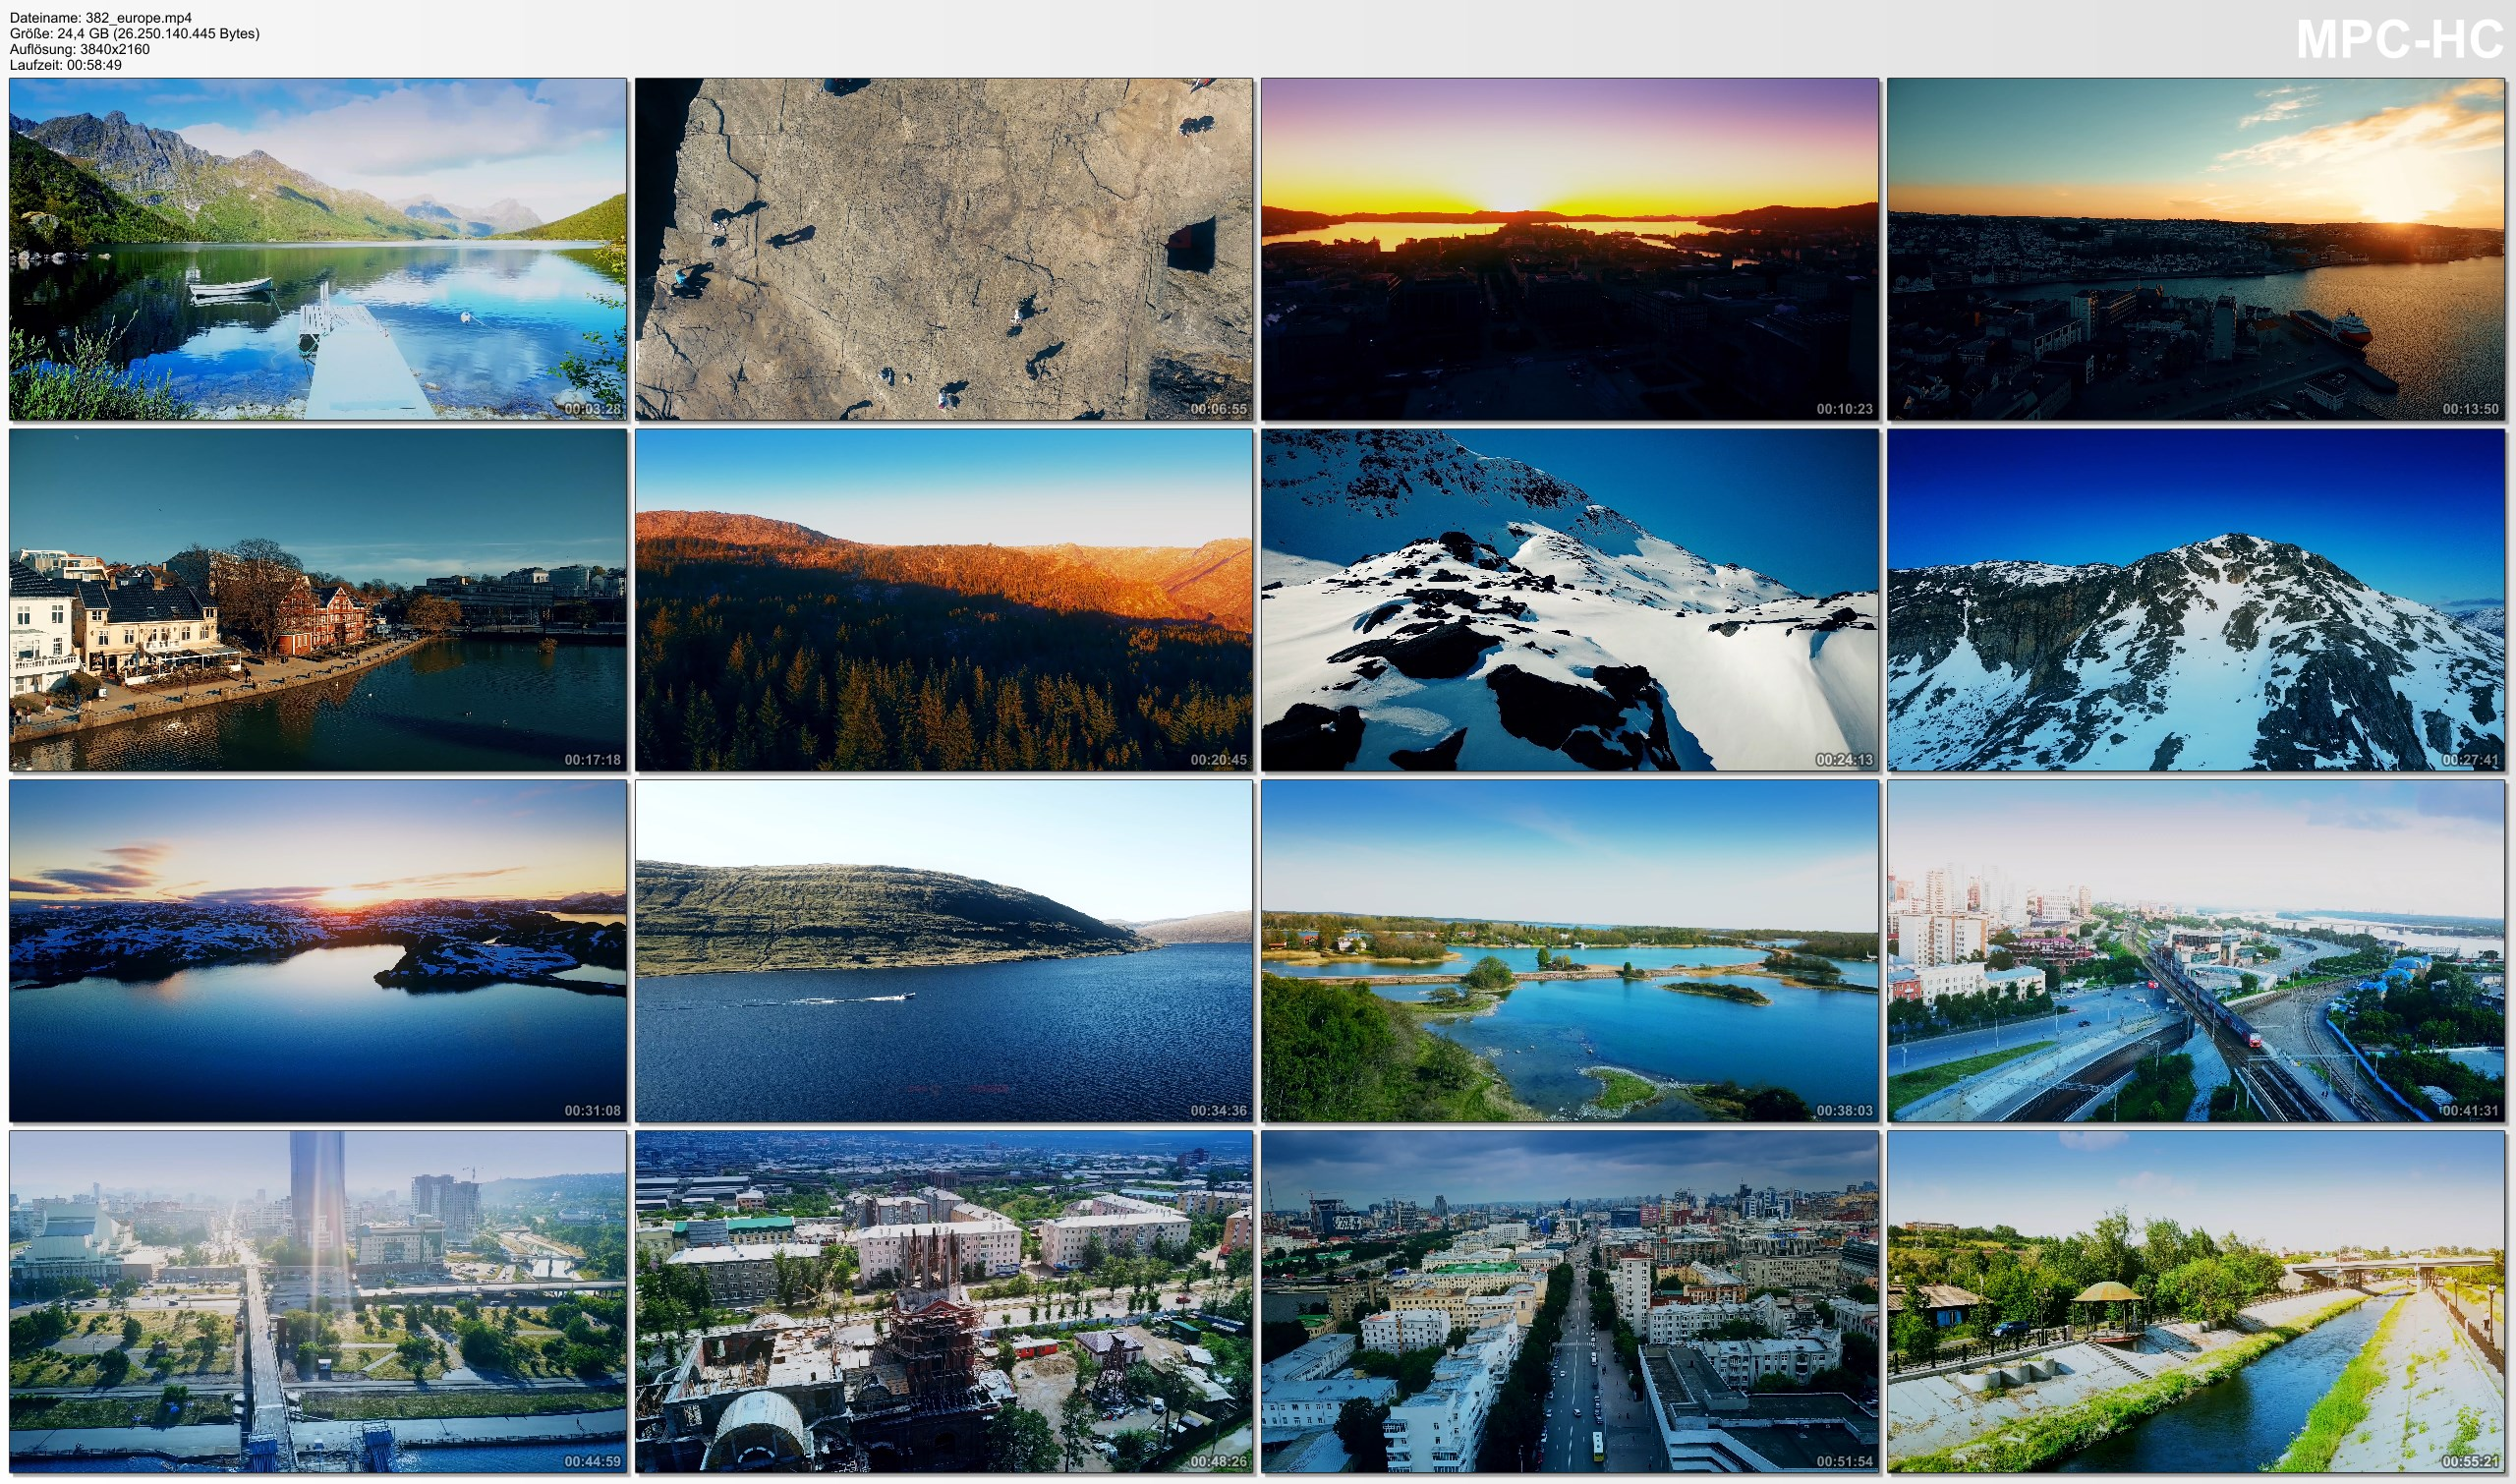 Drone Pictures from Video 【4K】Drone Footage | The Northern Hemisphere *EXTENDED* 2019 .: Cinematic Aerial Film | Norway & More